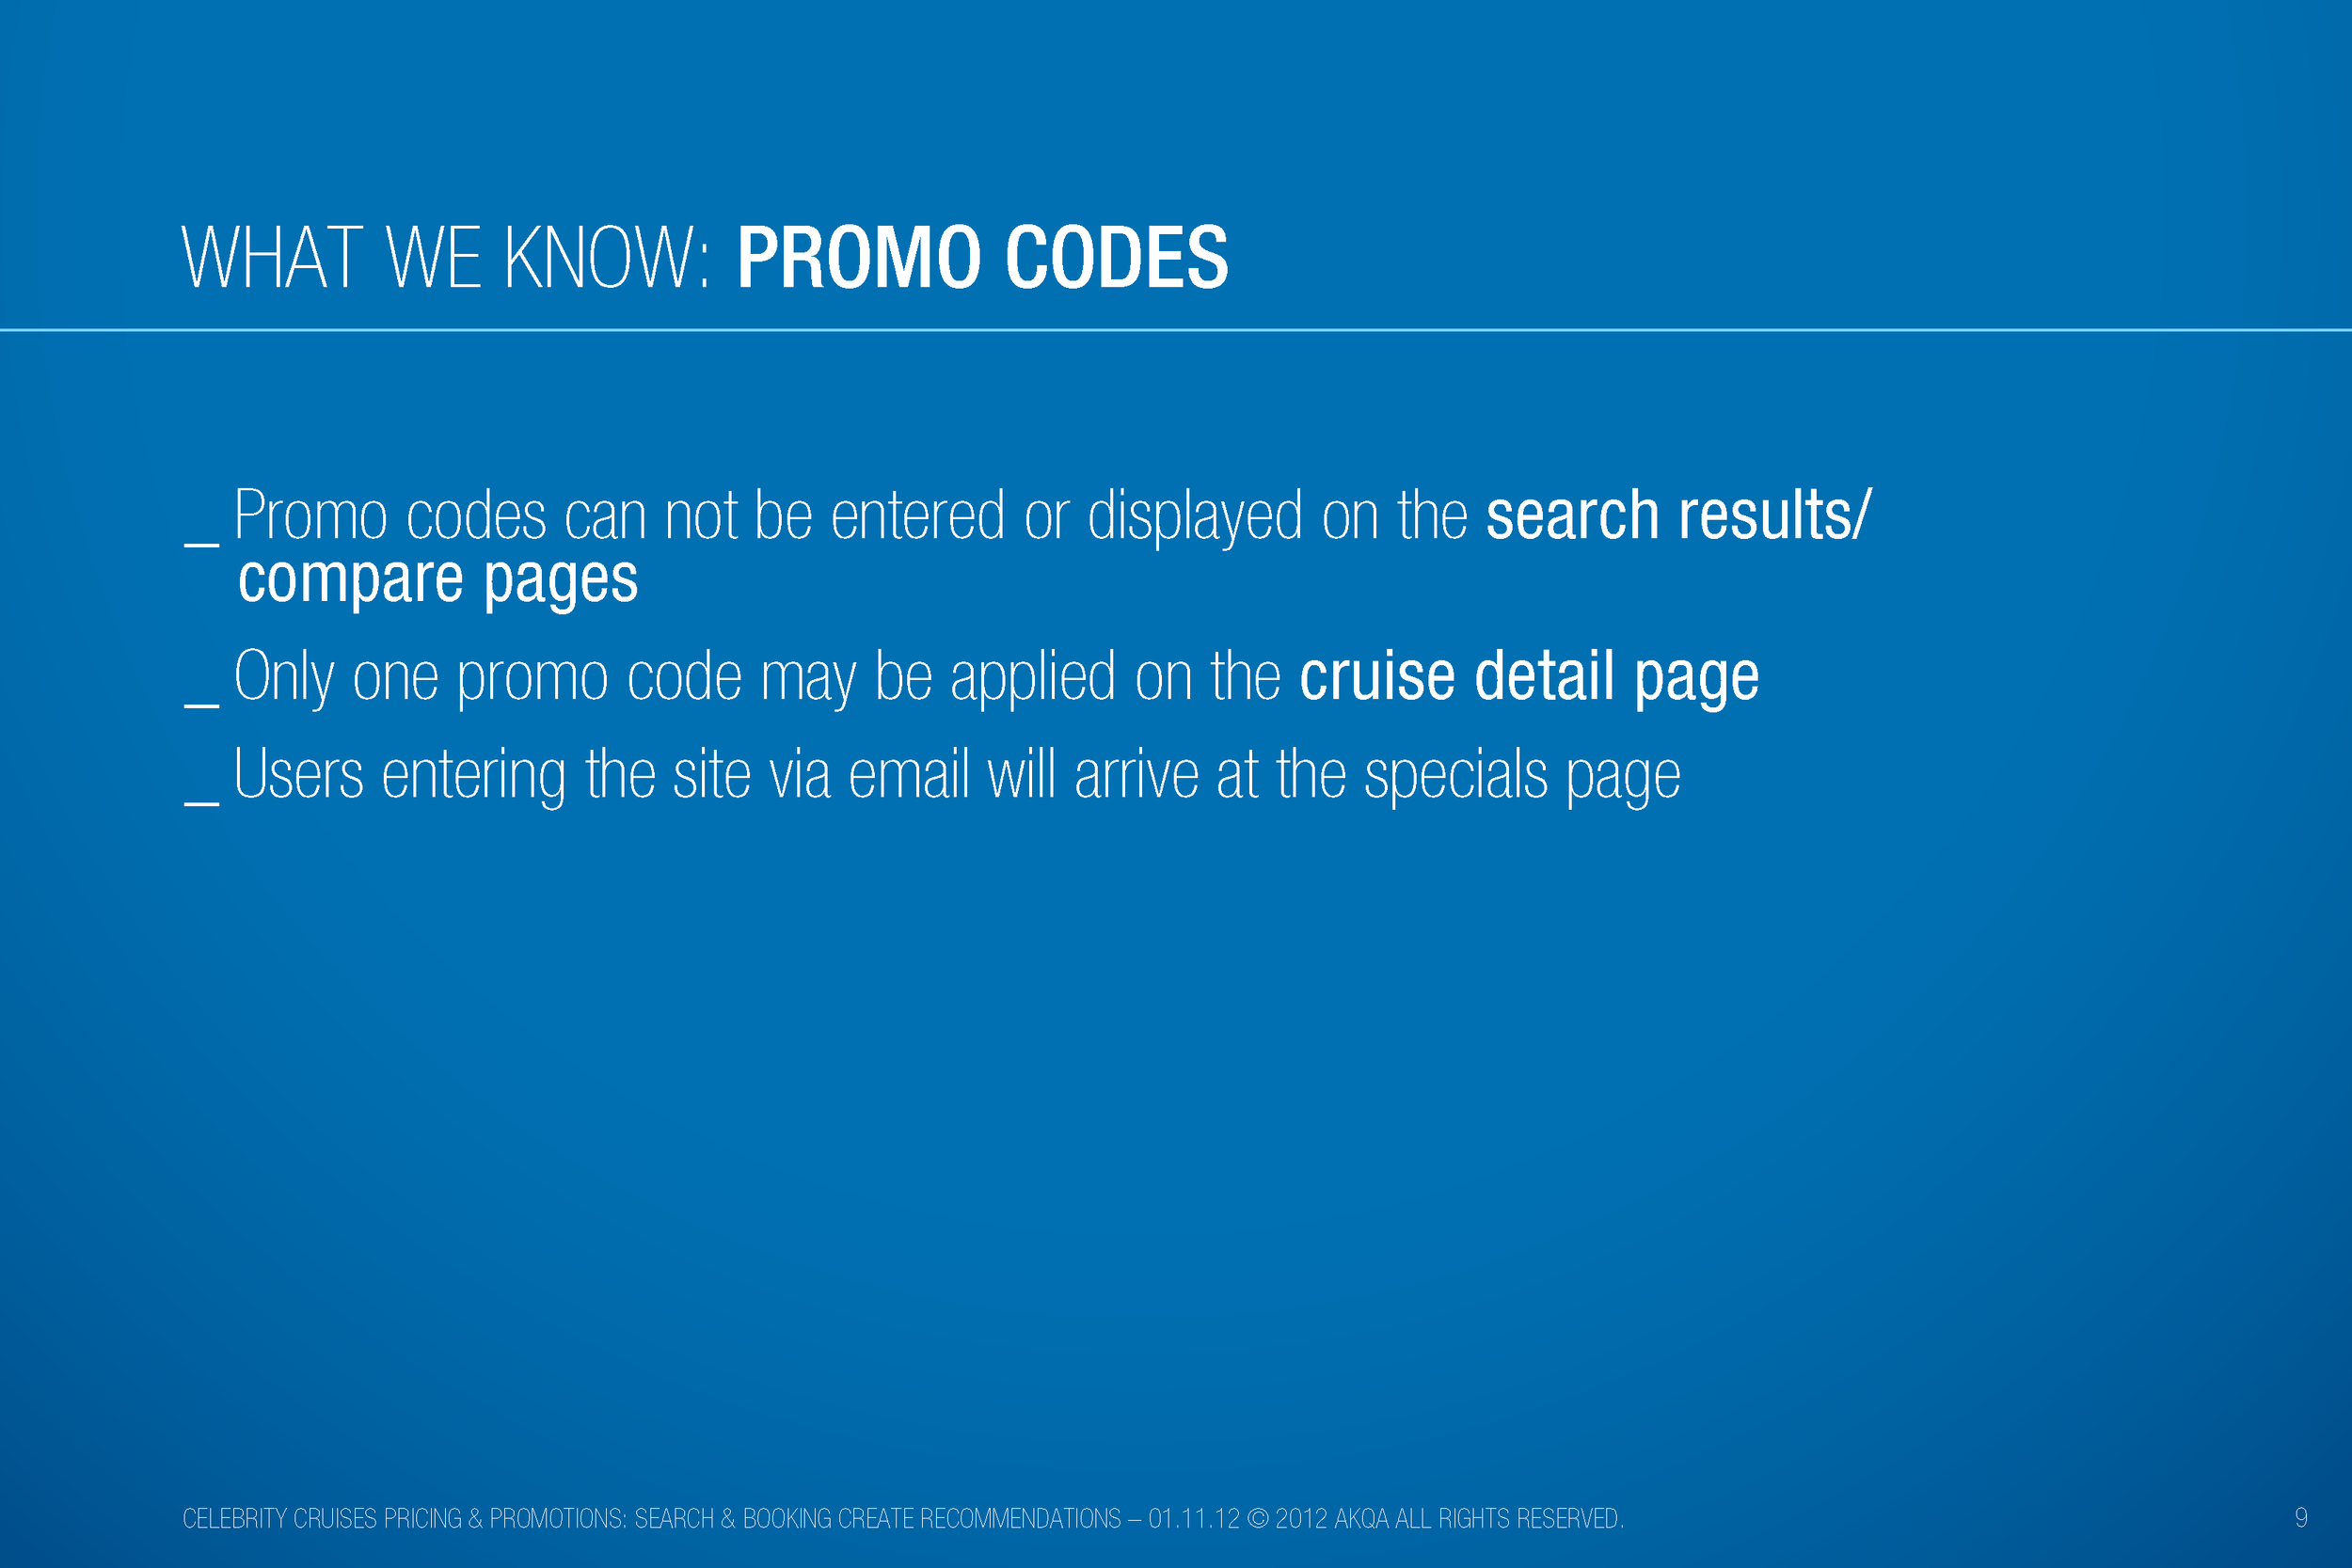 cc-pricingpromotions_Page_09.png